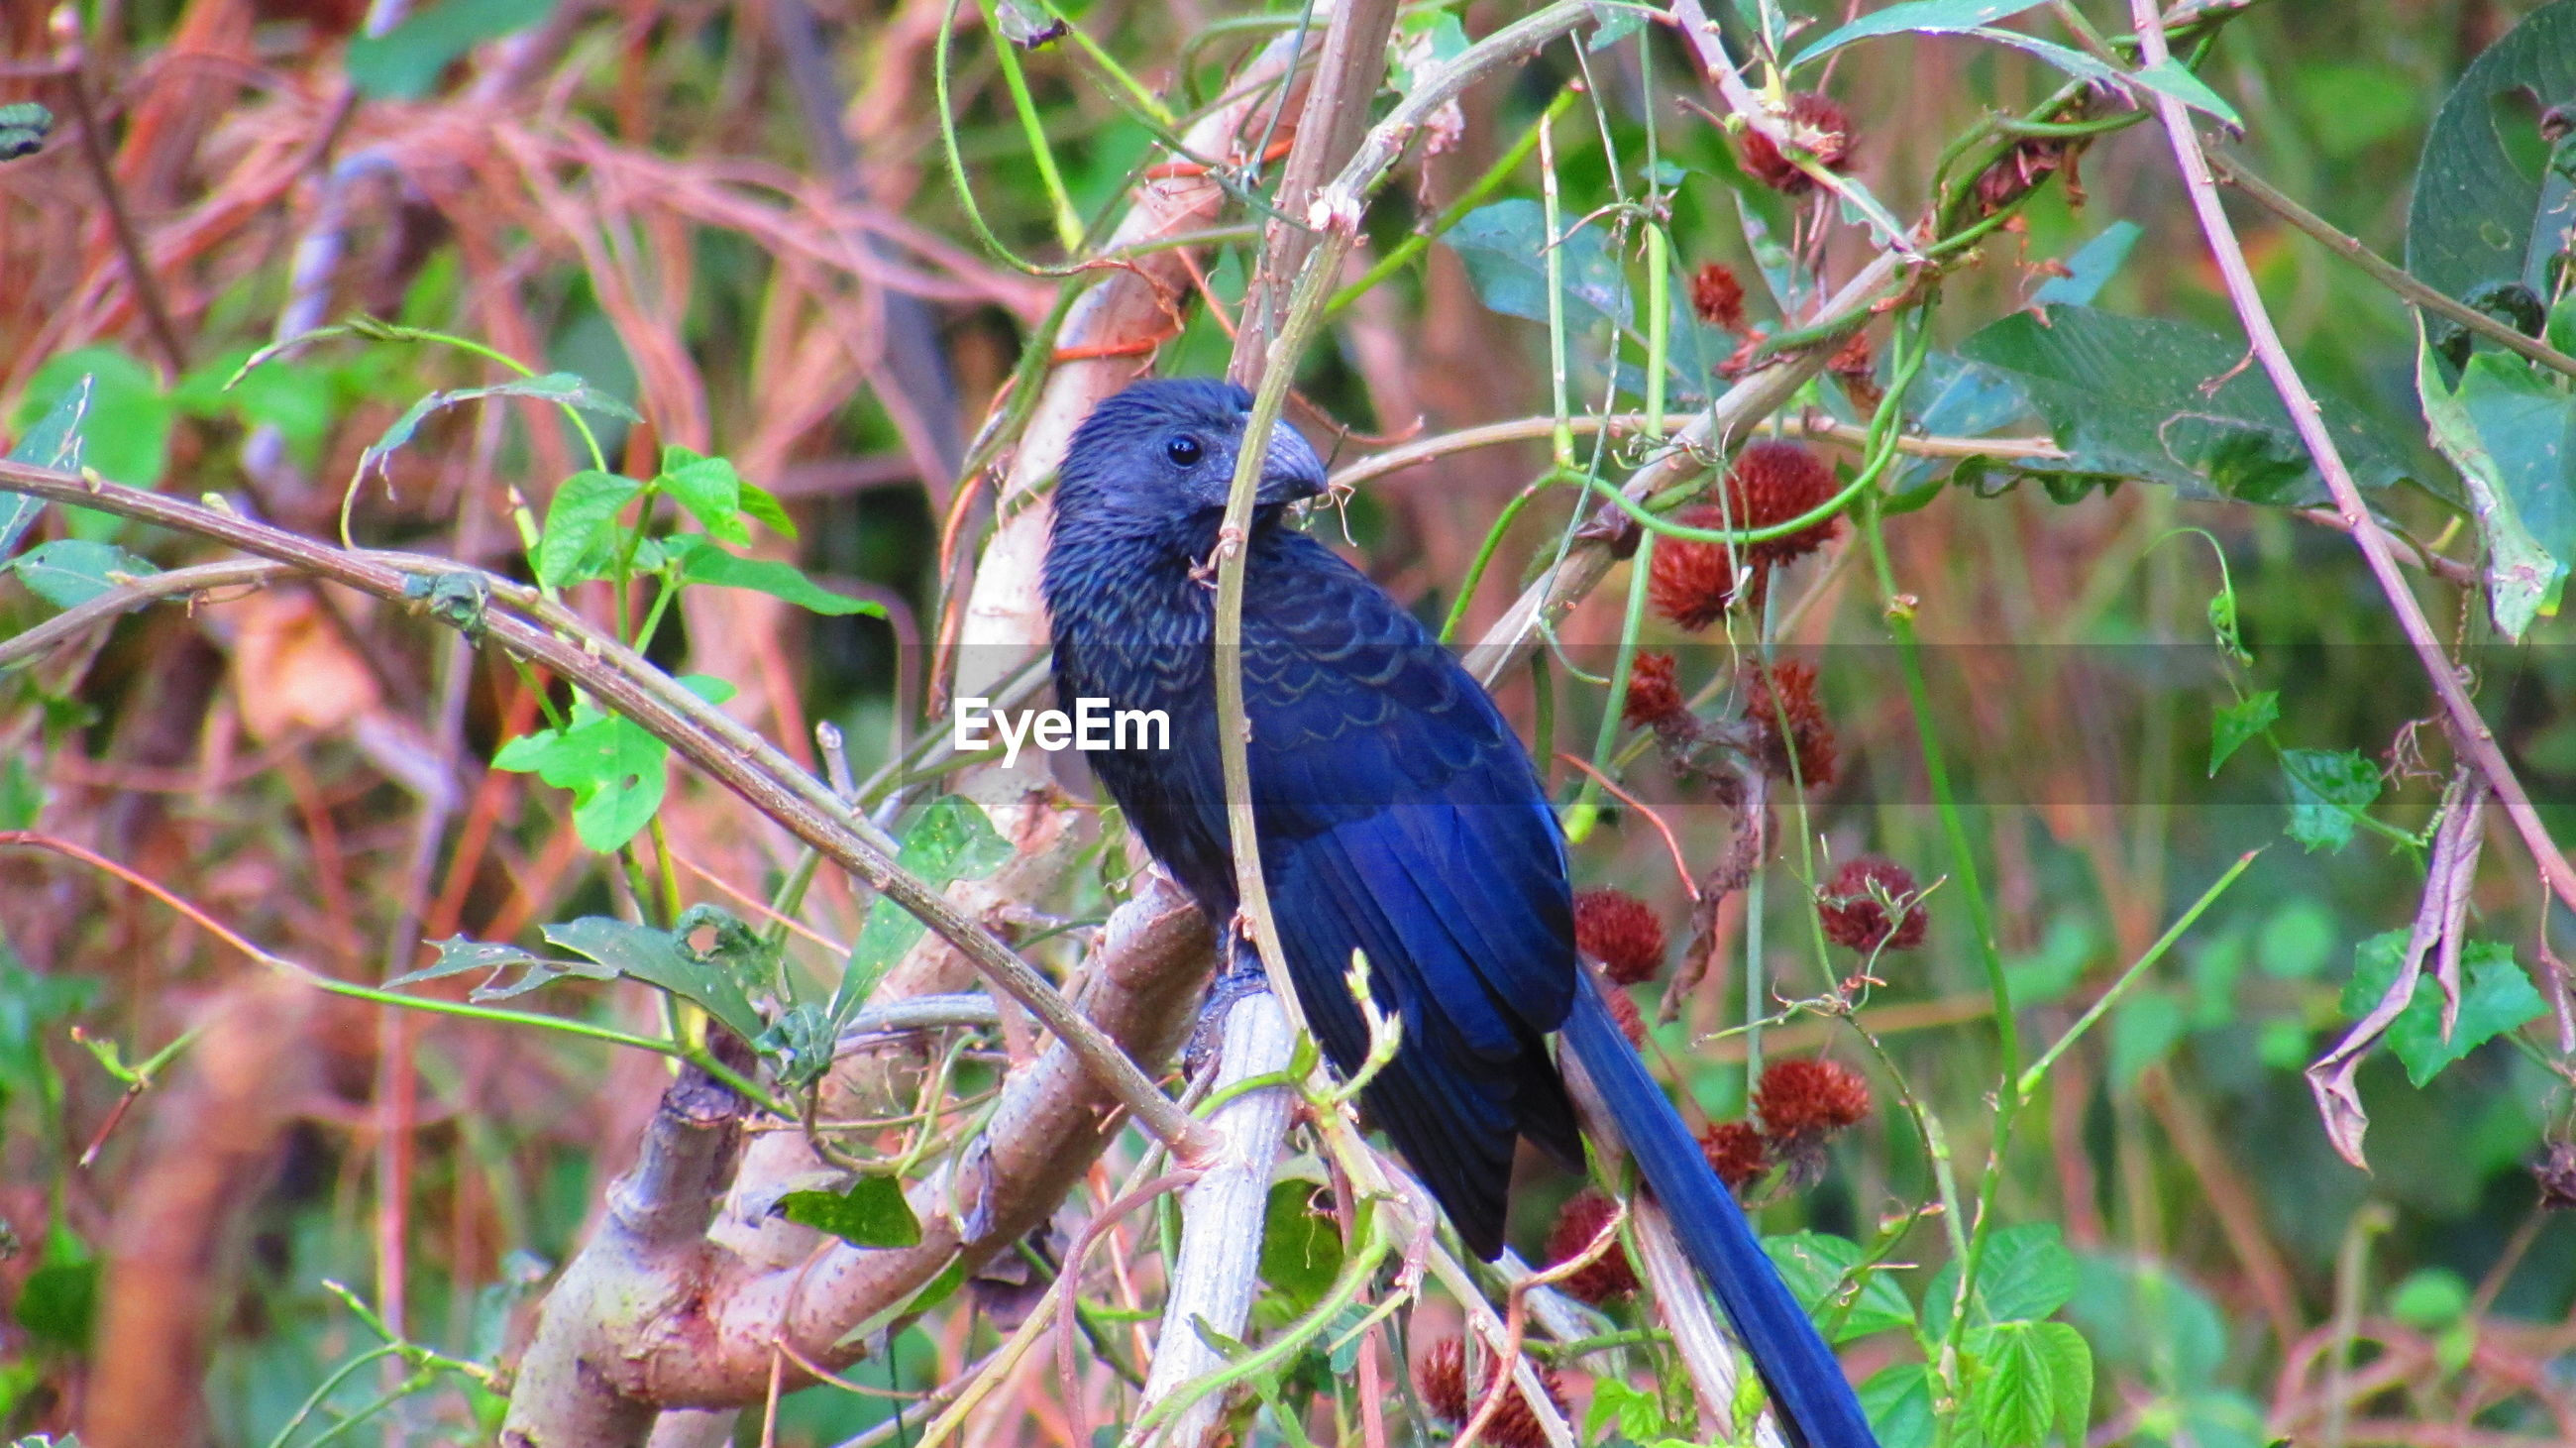 Groove-billed ani perching on branch of tree